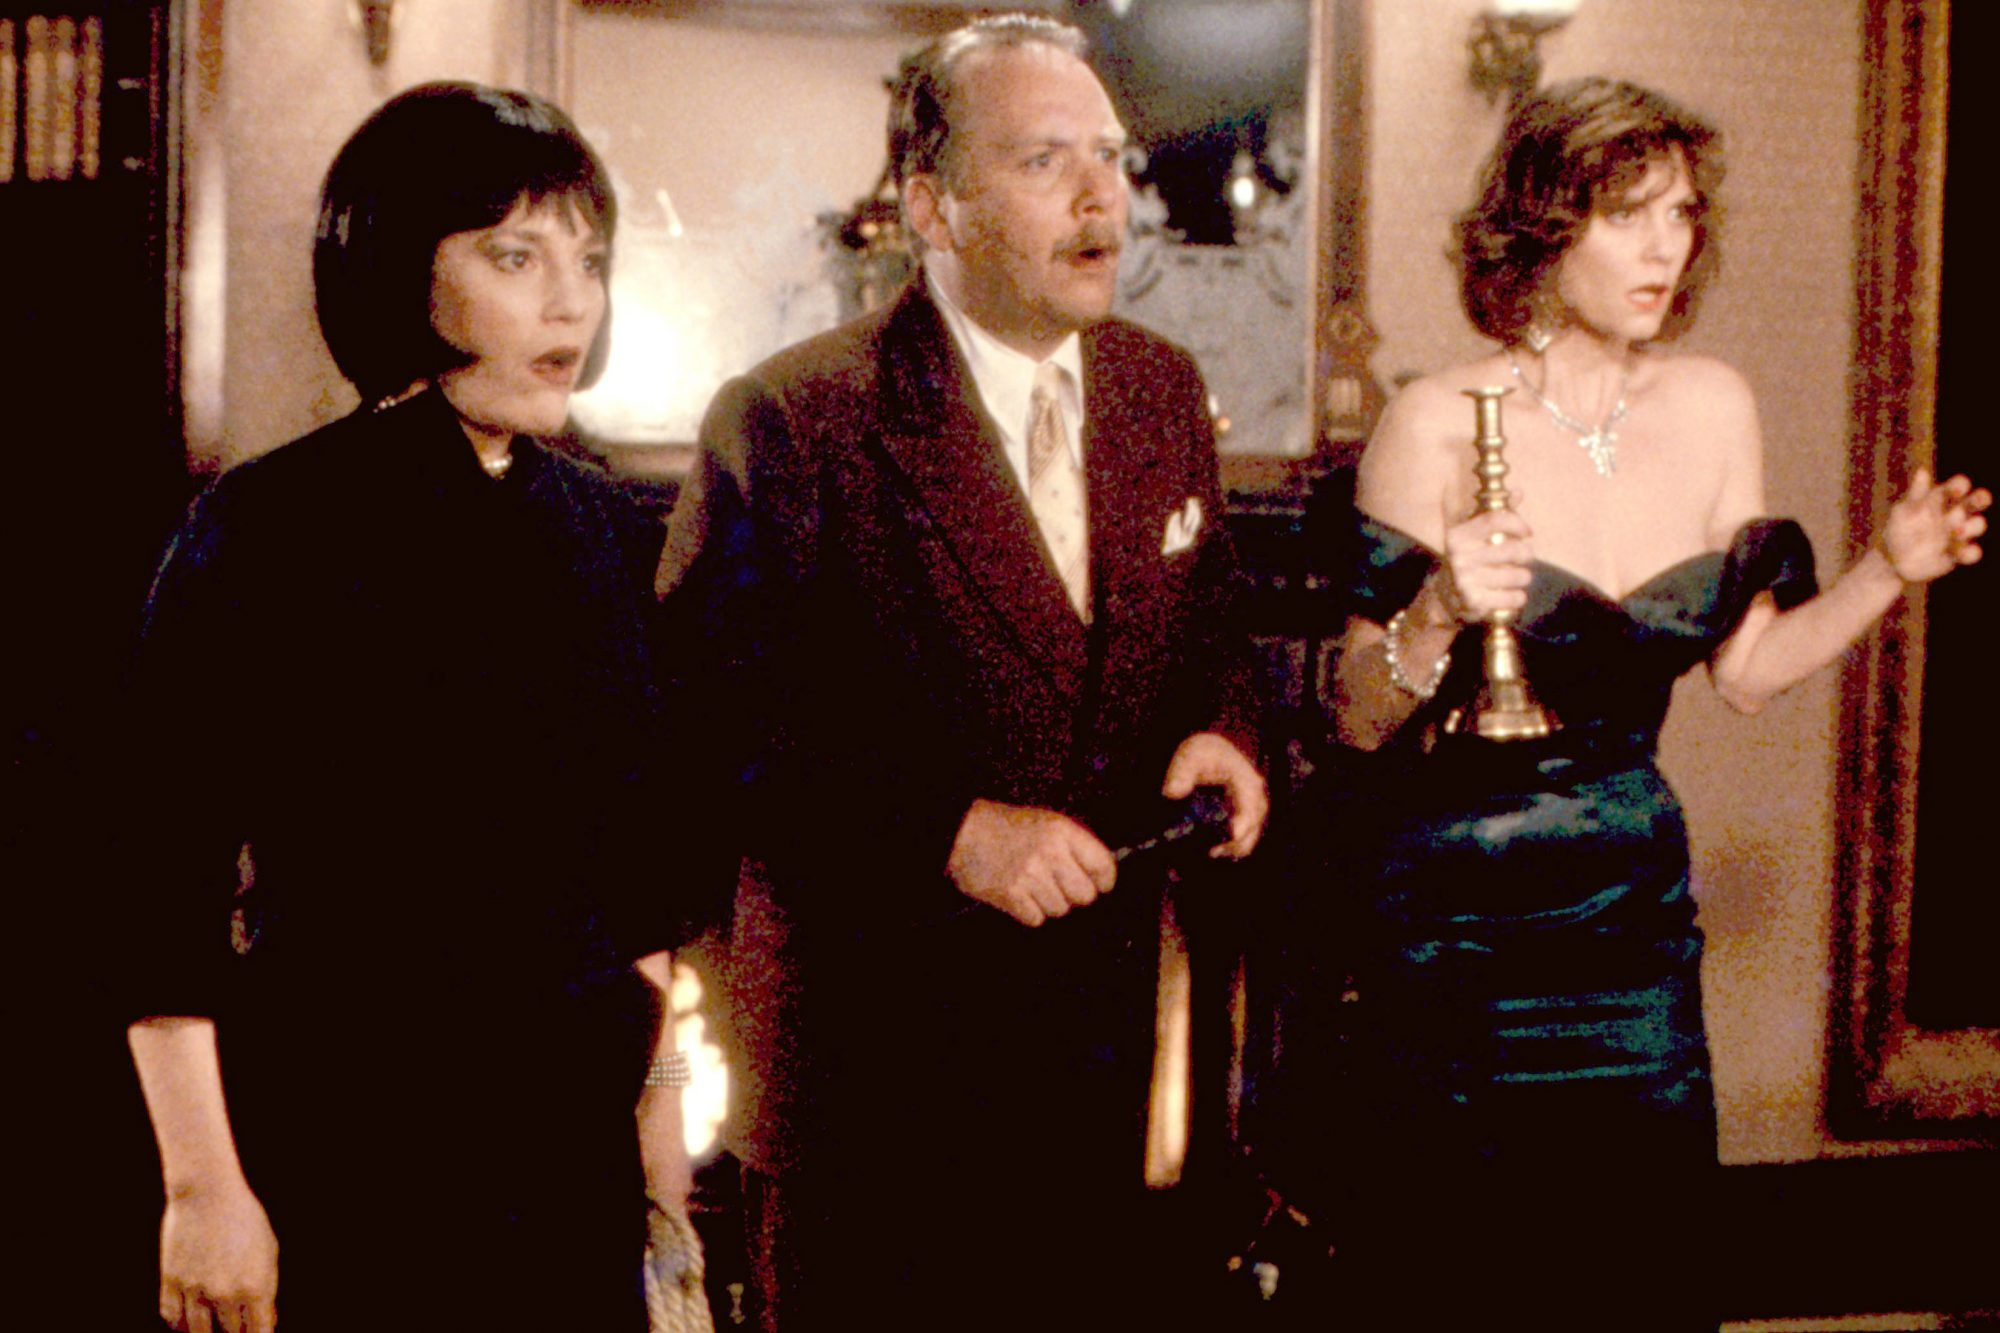 CLUE, Madeline Kahn, Martin Mull, Lesley Ann Warren, 1985, (c)Paramount/courtesy Everett Collection